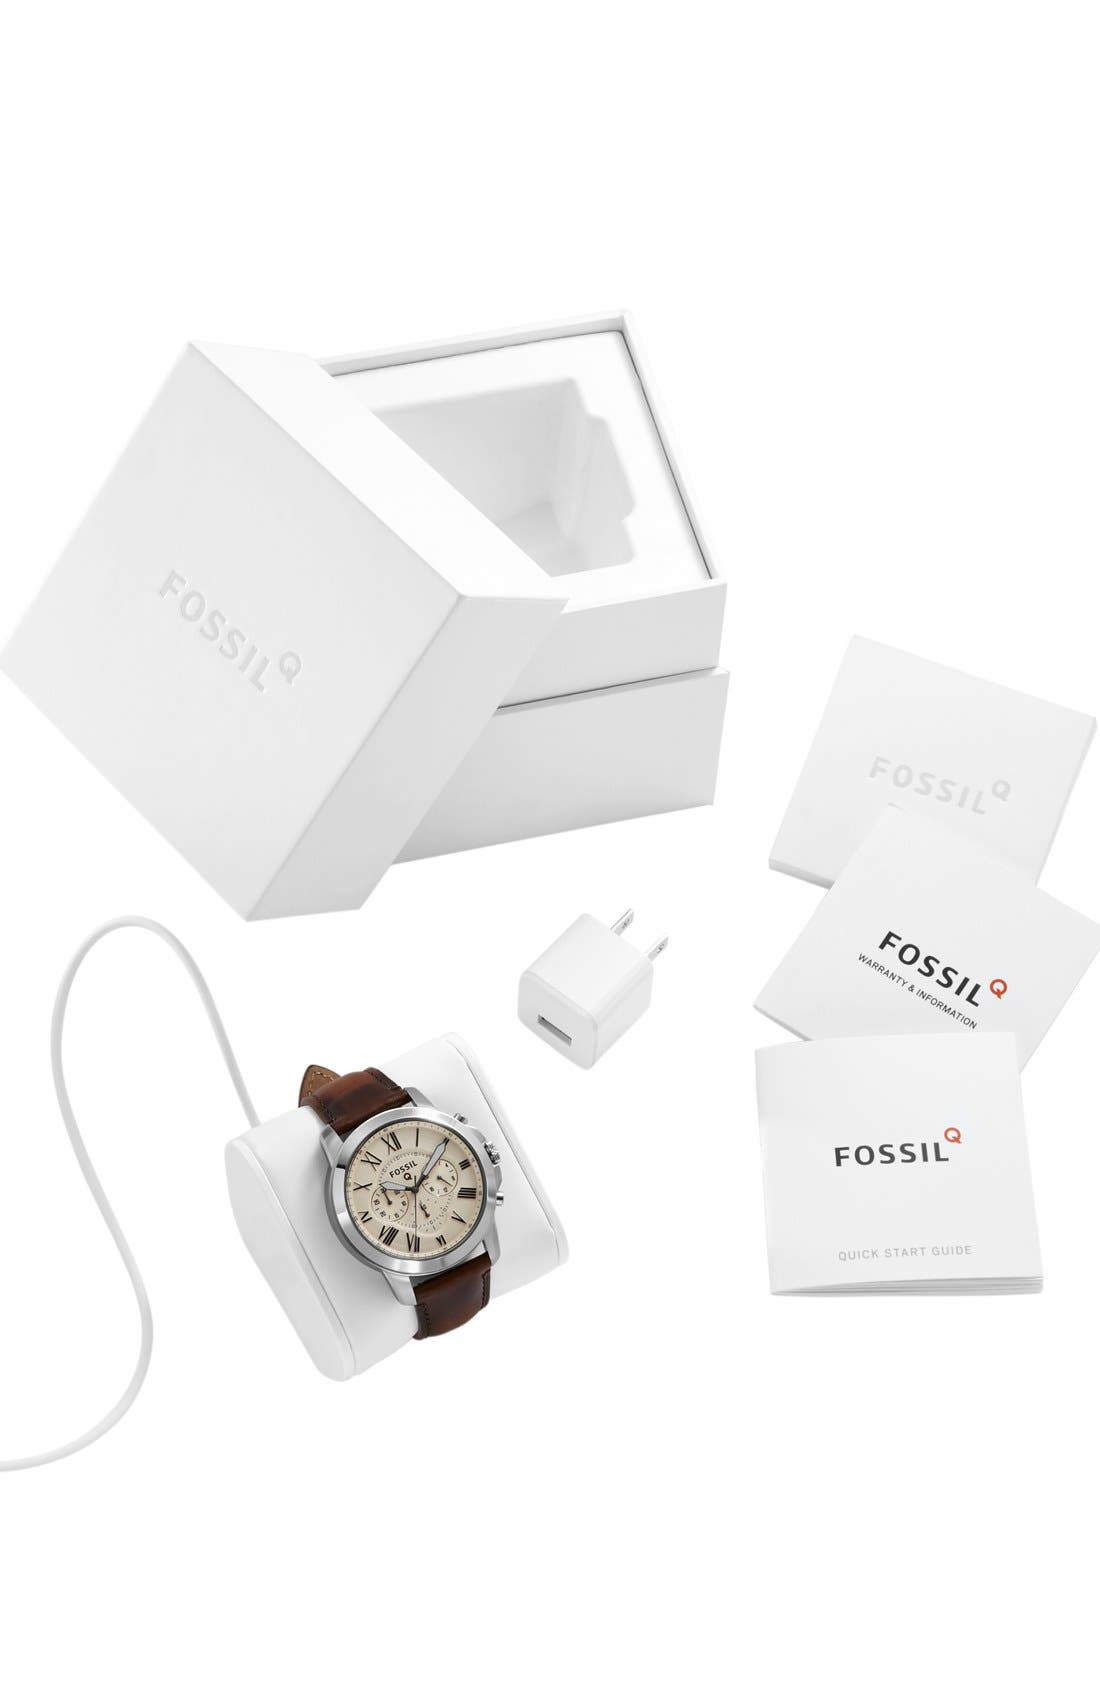 Fossil 'Fossil Q - Grant' Round Chronograph Leather Strap Smart Watch, 44mm,                             Alternate thumbnail 6, color,                             Brown/ Egg Shell